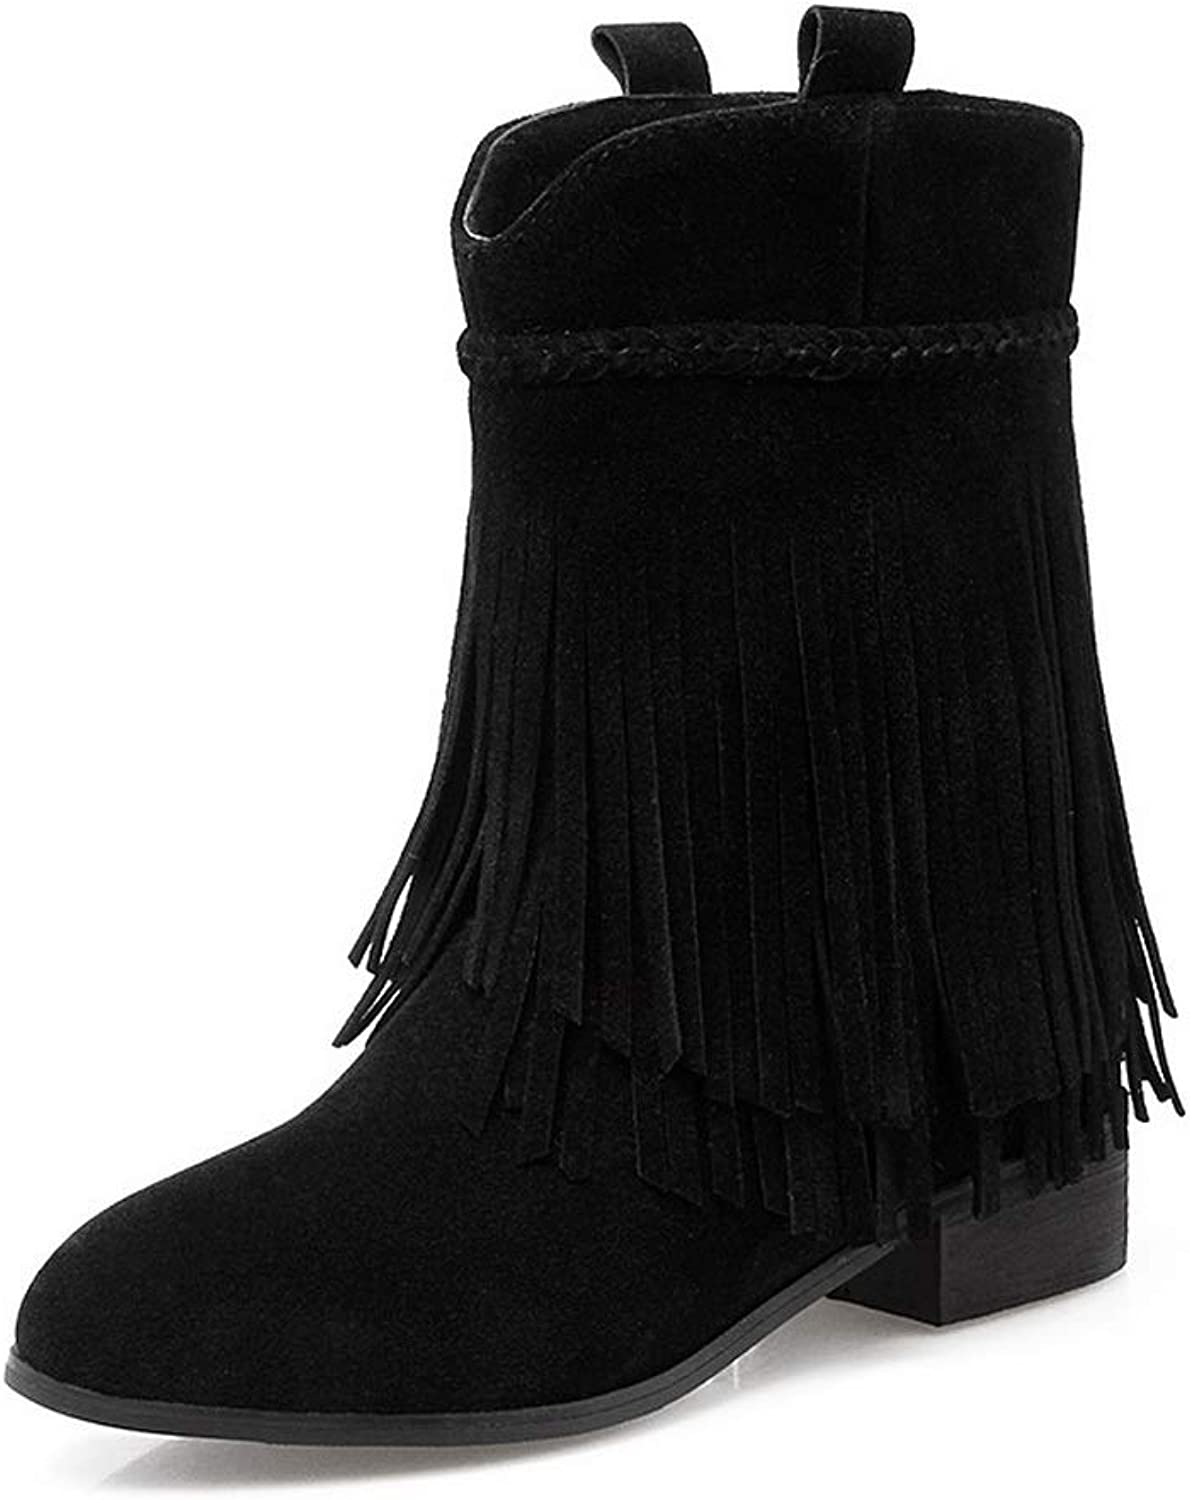 AdeeSu Womens Fringed Solid Charms Leather Boots SXC03033